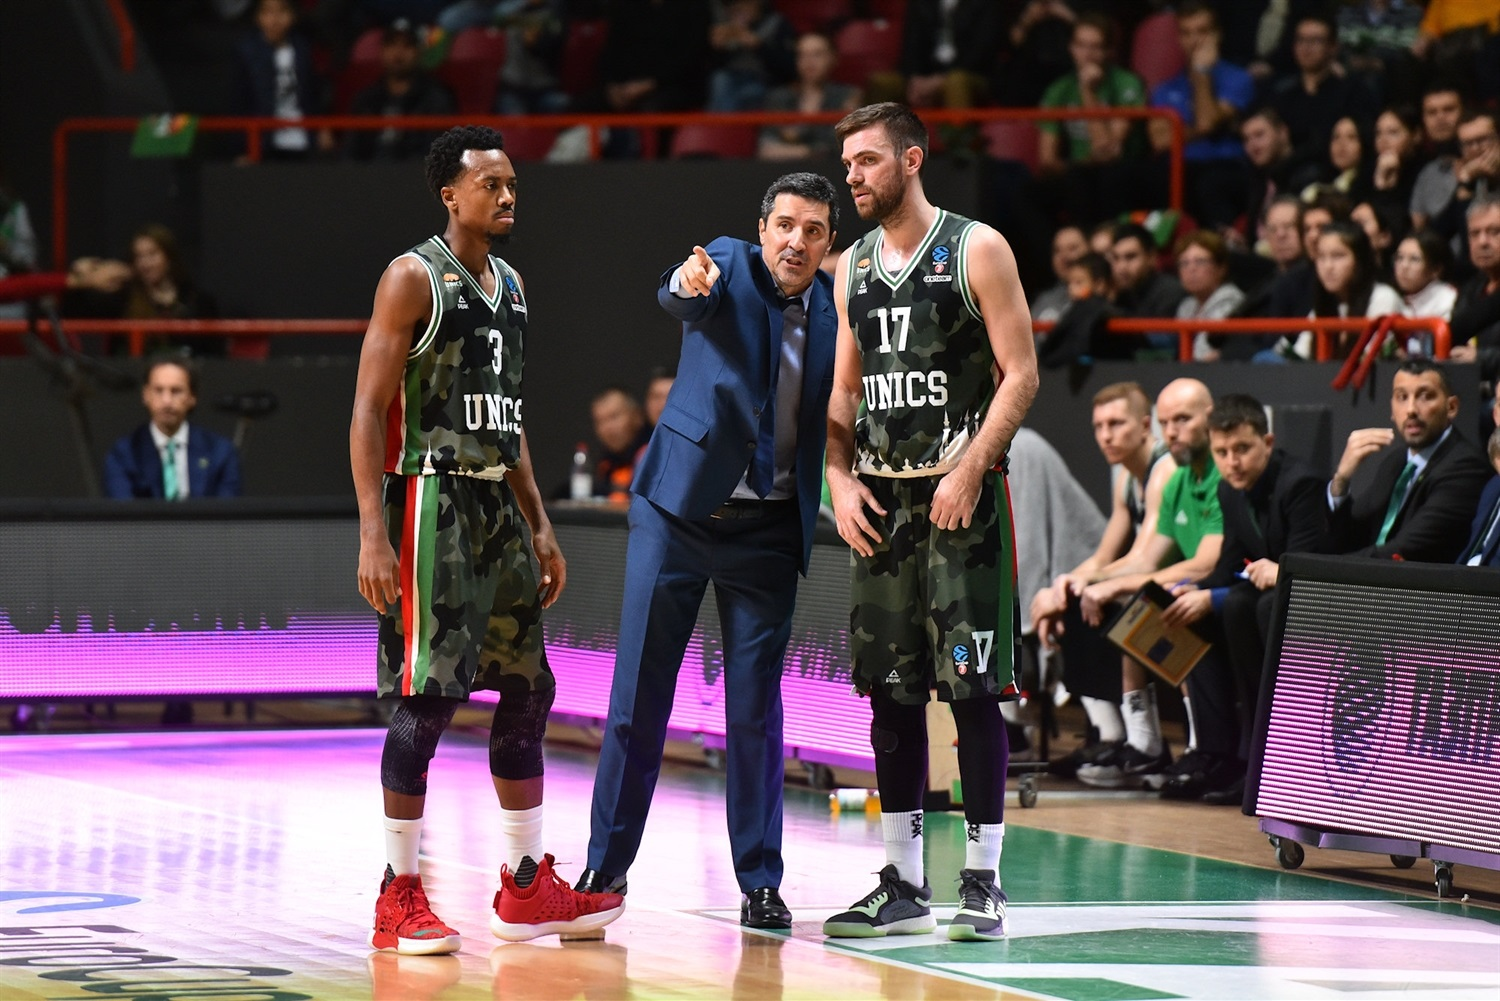 Dimitris Priftis - UNICS Kazan (photo UNICS) - EC19